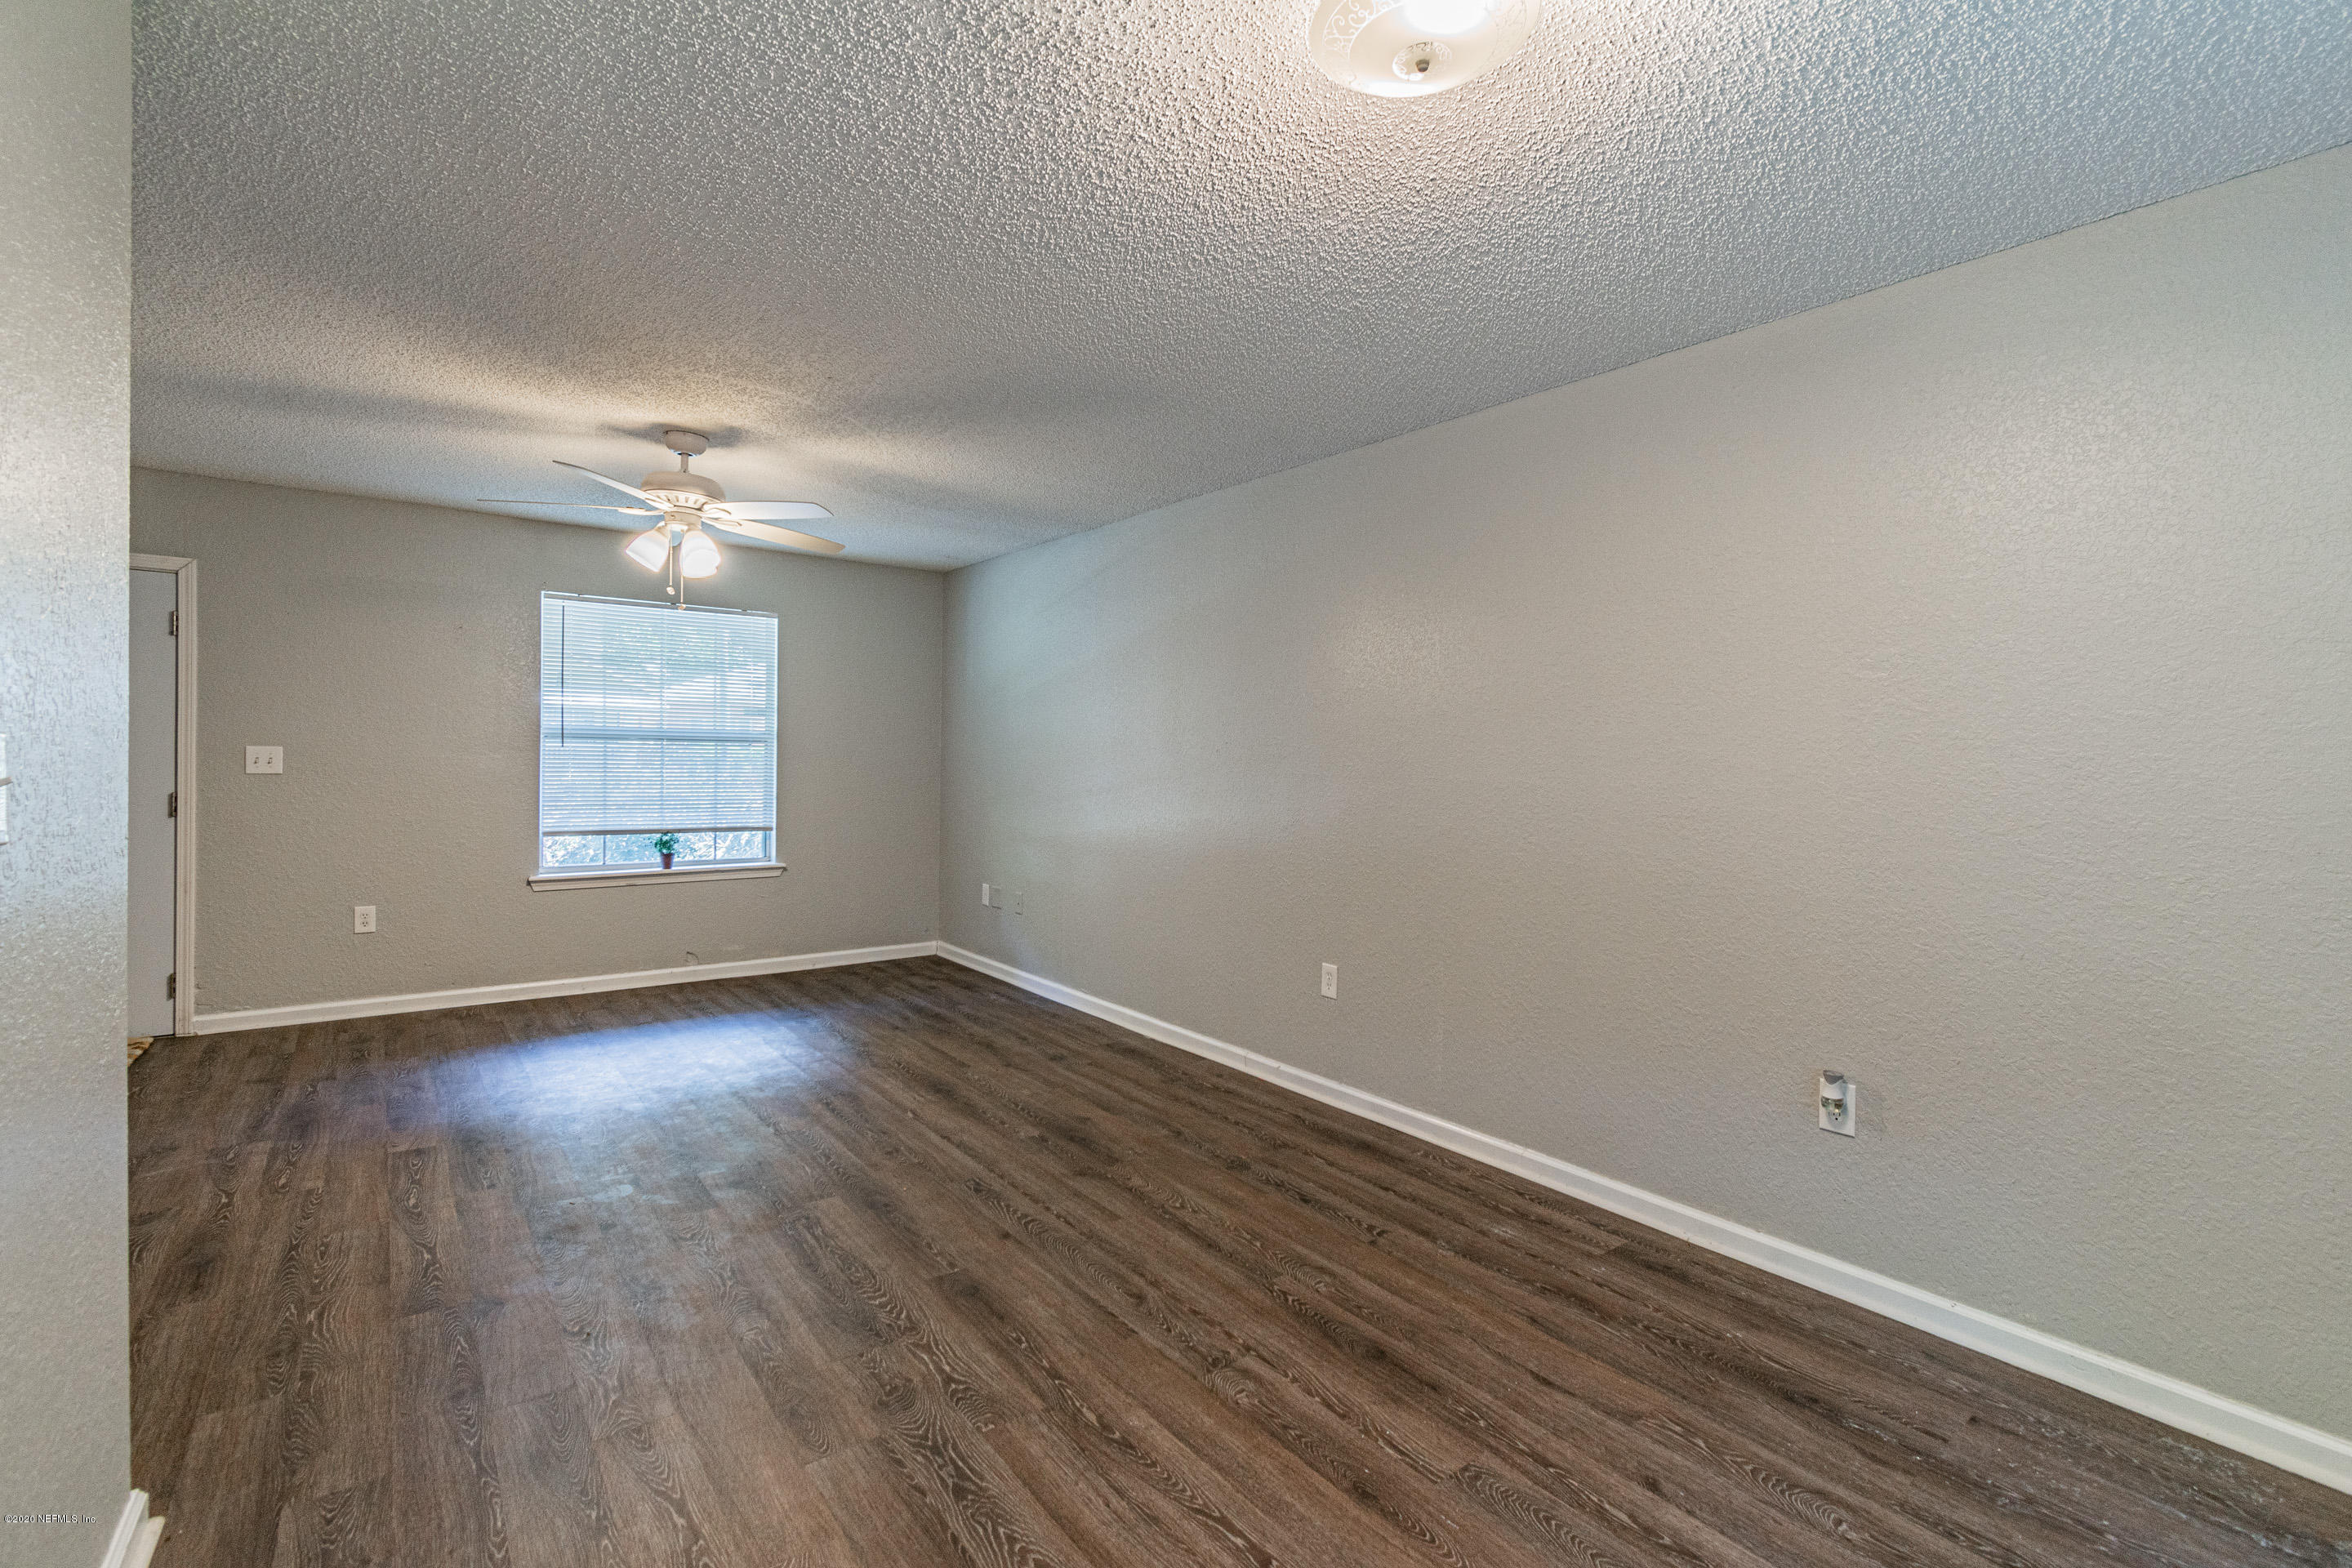 1344 8TH, JACKSONVILLE, FLORIDA 32209, 3 Bedrooms Bedrooms, ,2 BathroomsBathrooms,Residential,For sale,8TH,1054486